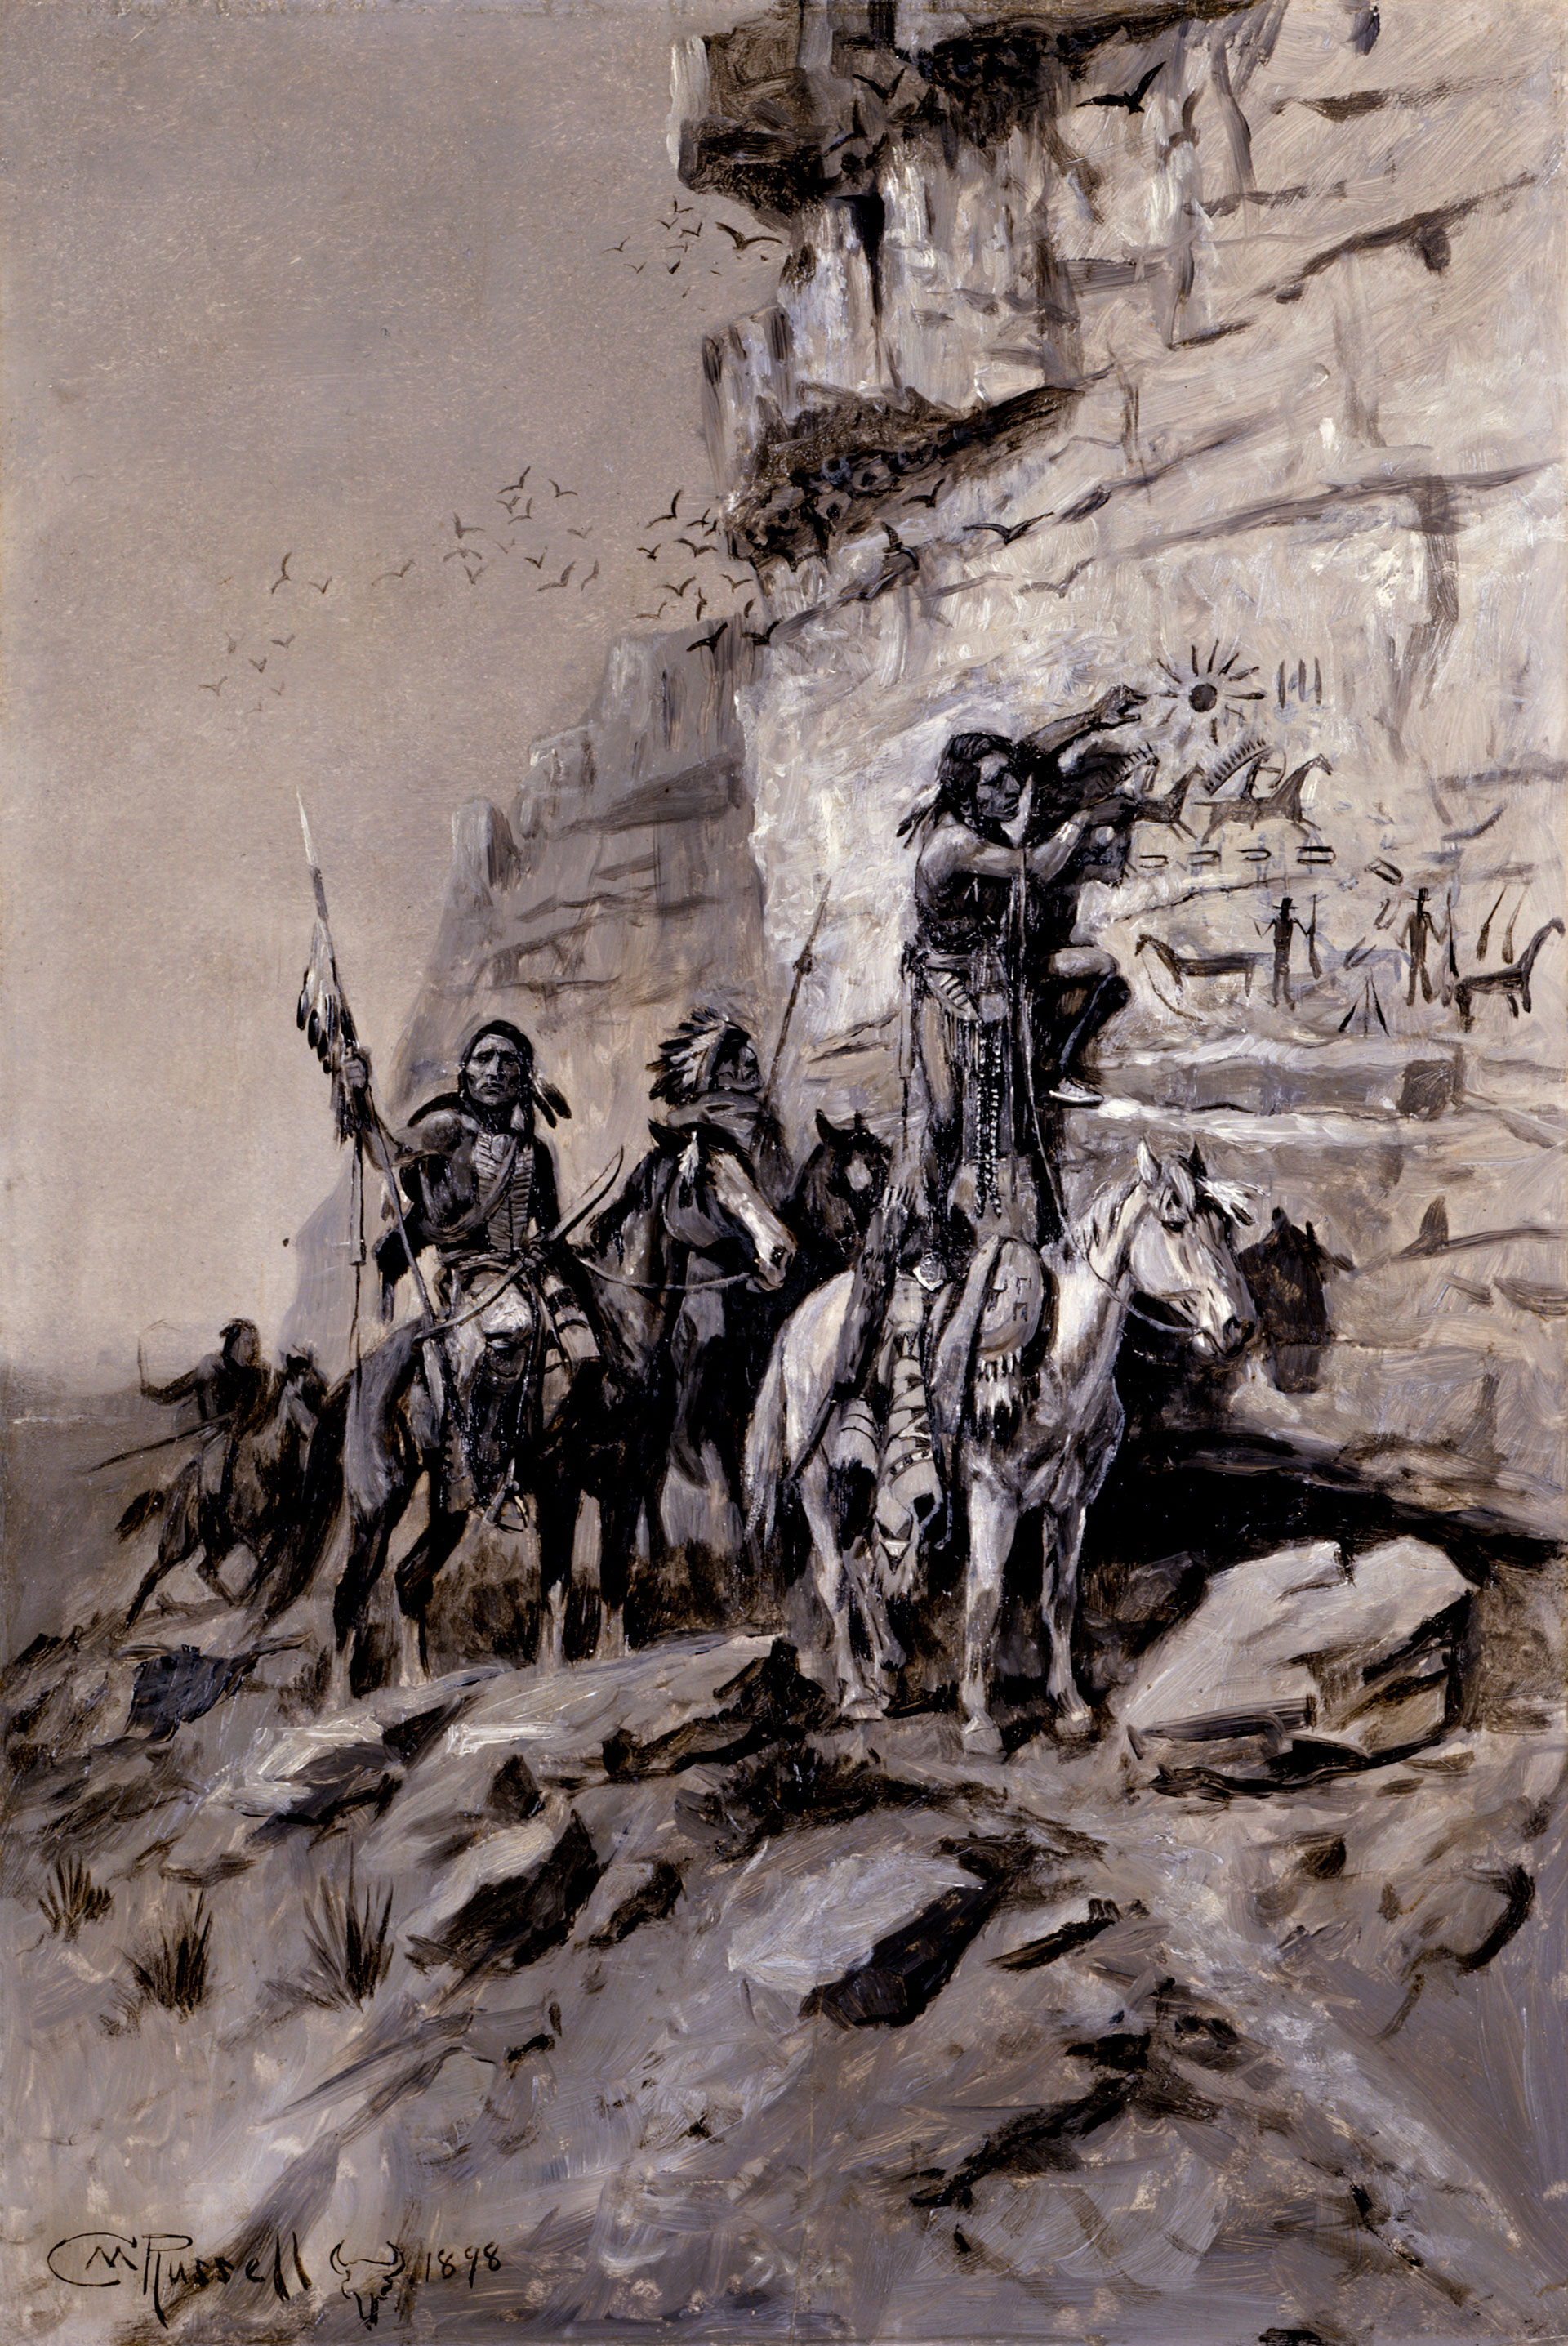 Artwork by Charles Marion Russel representing a group of men on horseback near a cliff, in Alberta, Canada. One of them is painting on the rock.